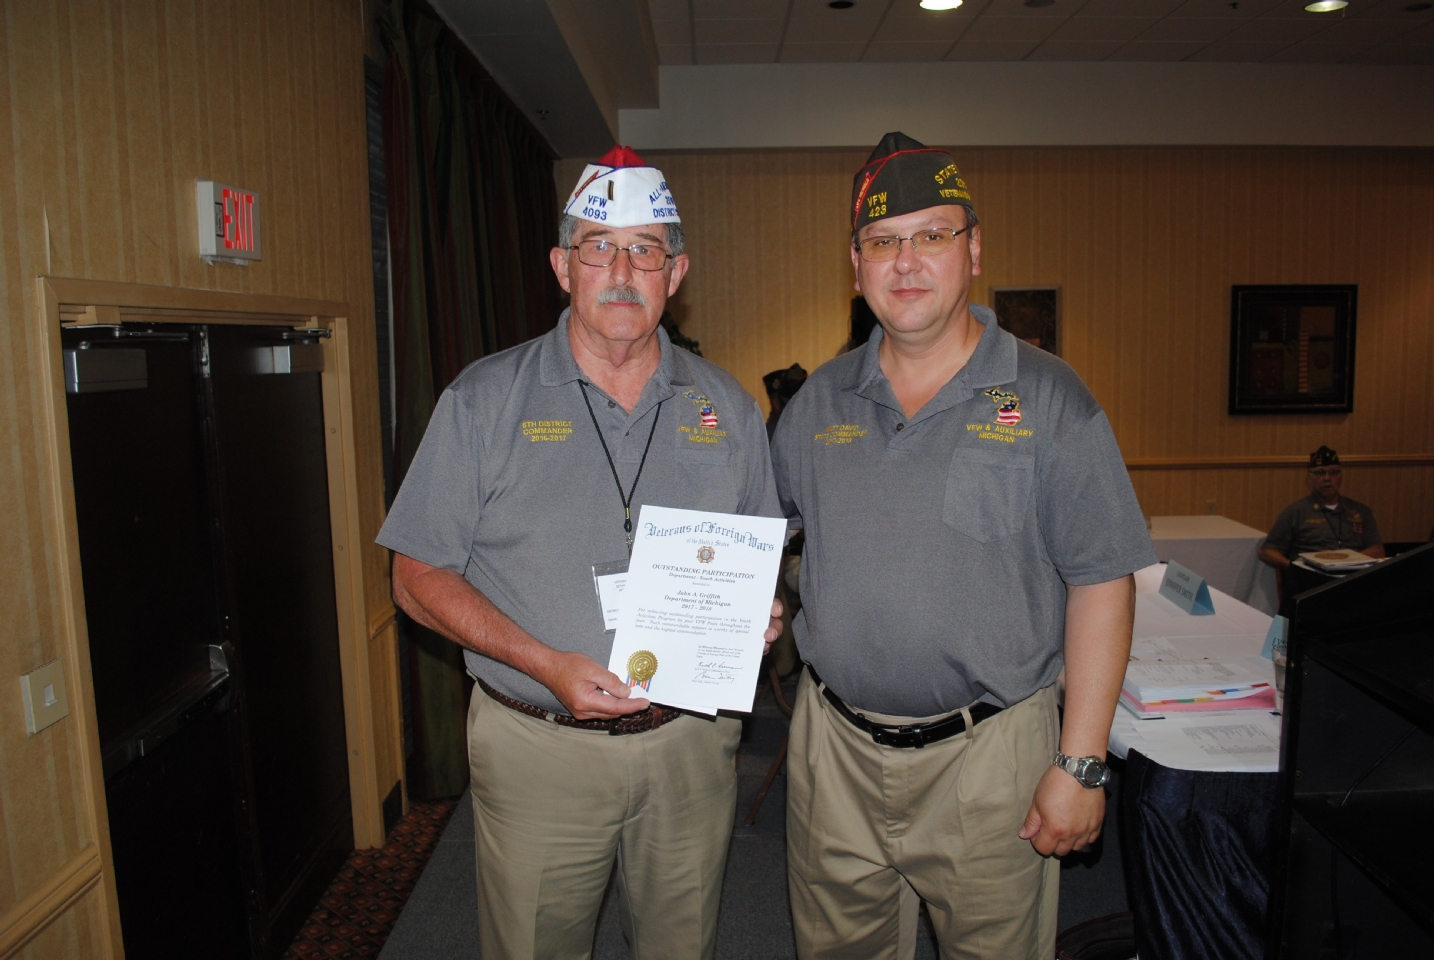 Outstanding Participation certificate presented to John Griffith (r.) for Youth Activities Program by Cmdr. Matt David (l.)